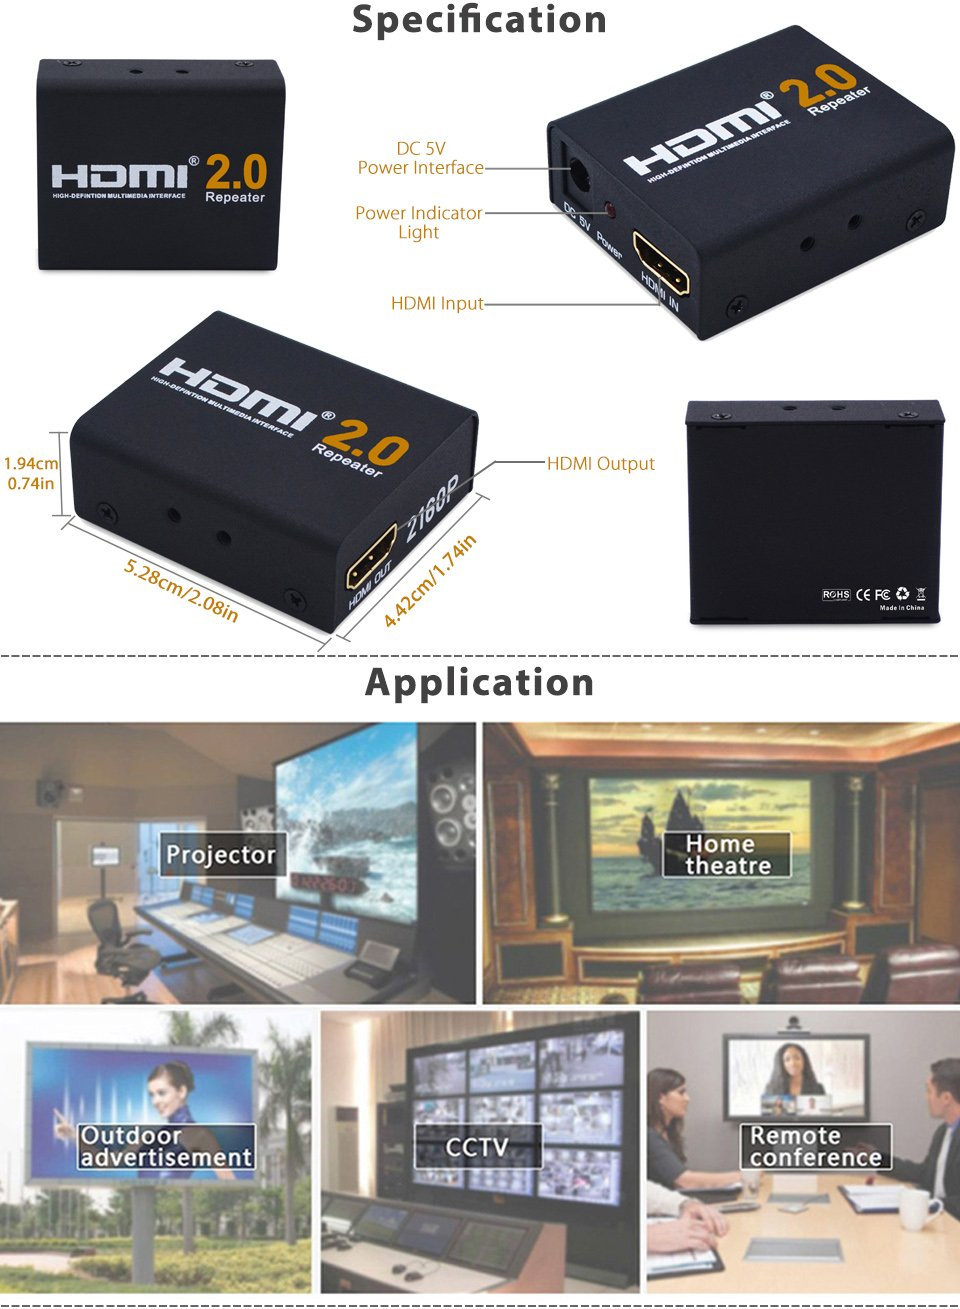 2160P 3D 4K HDMI Signal Repeater Extender Booster Adapter Over Signal HDTV 60 Meters Lossless Transmission by KSRplayer (Image #3)